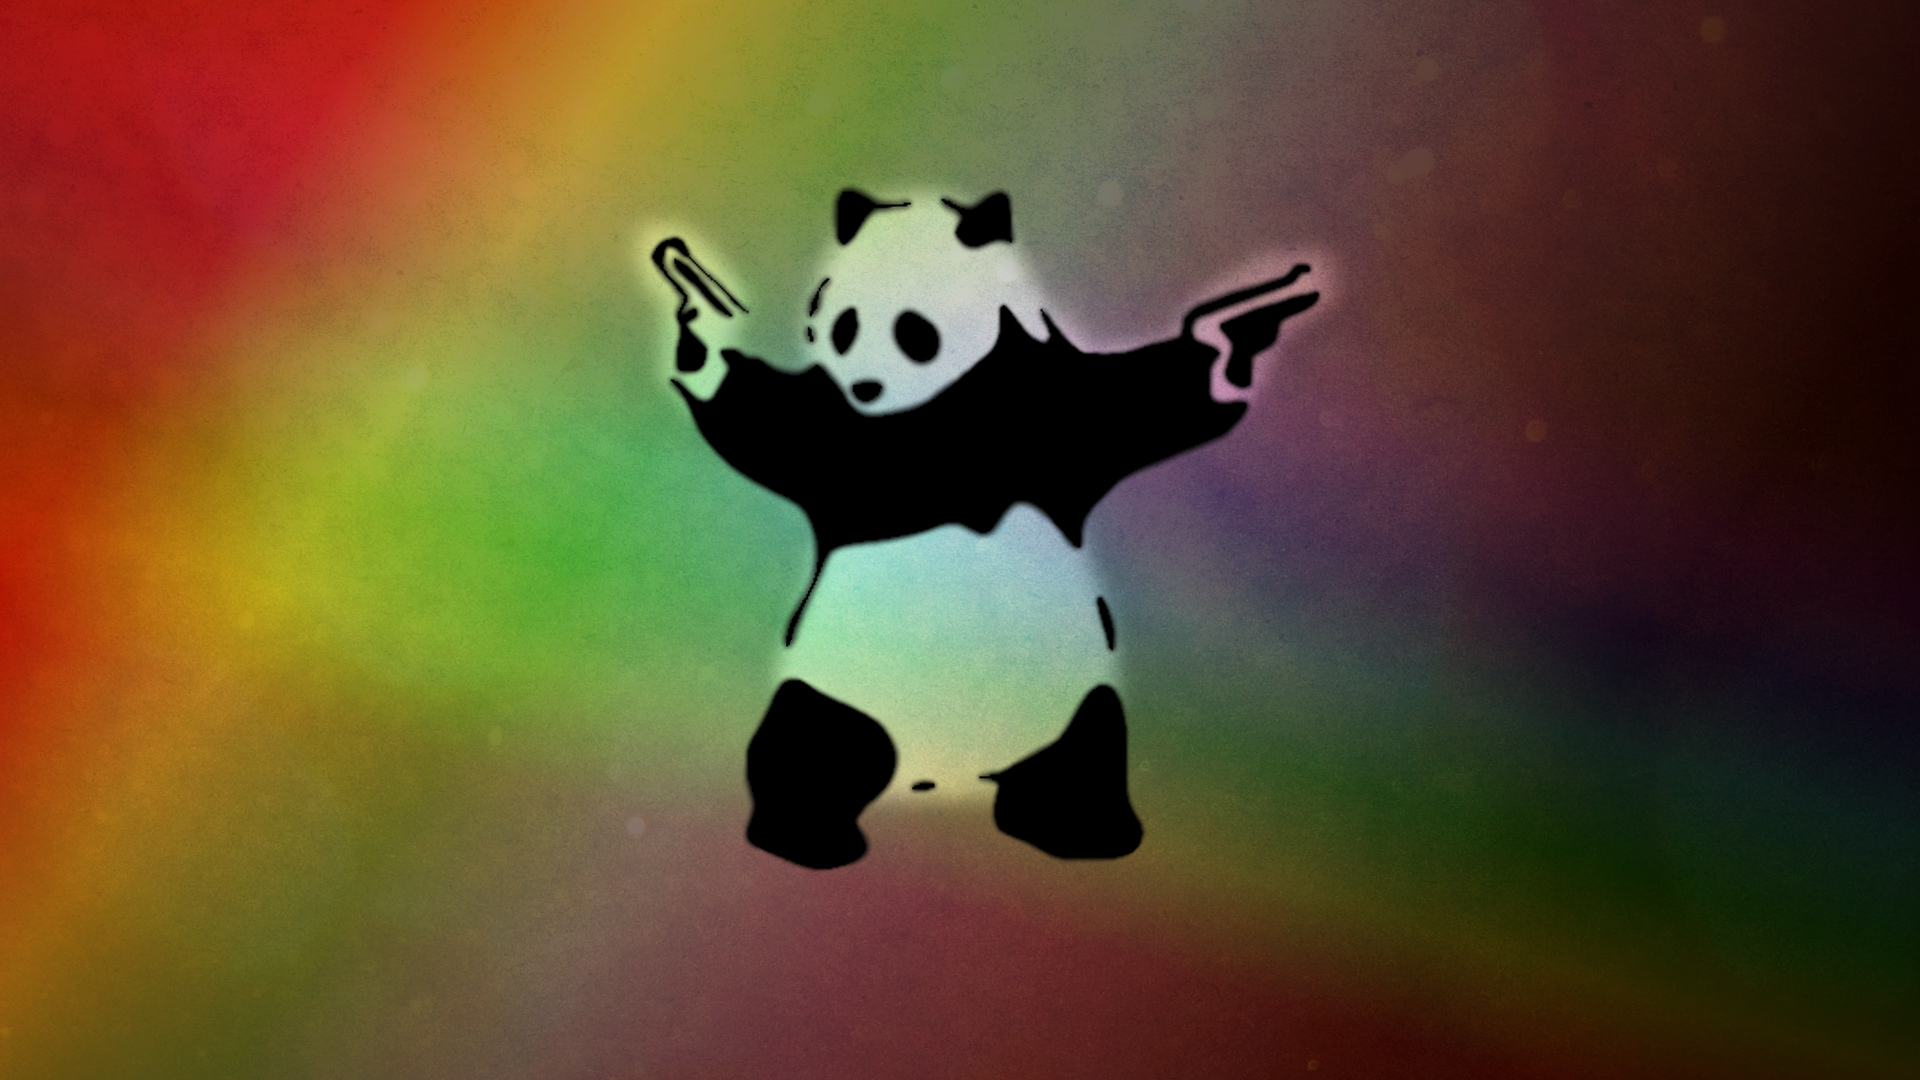 Bad Panda Background 1920x1080 by toddy2cool 1920x1080